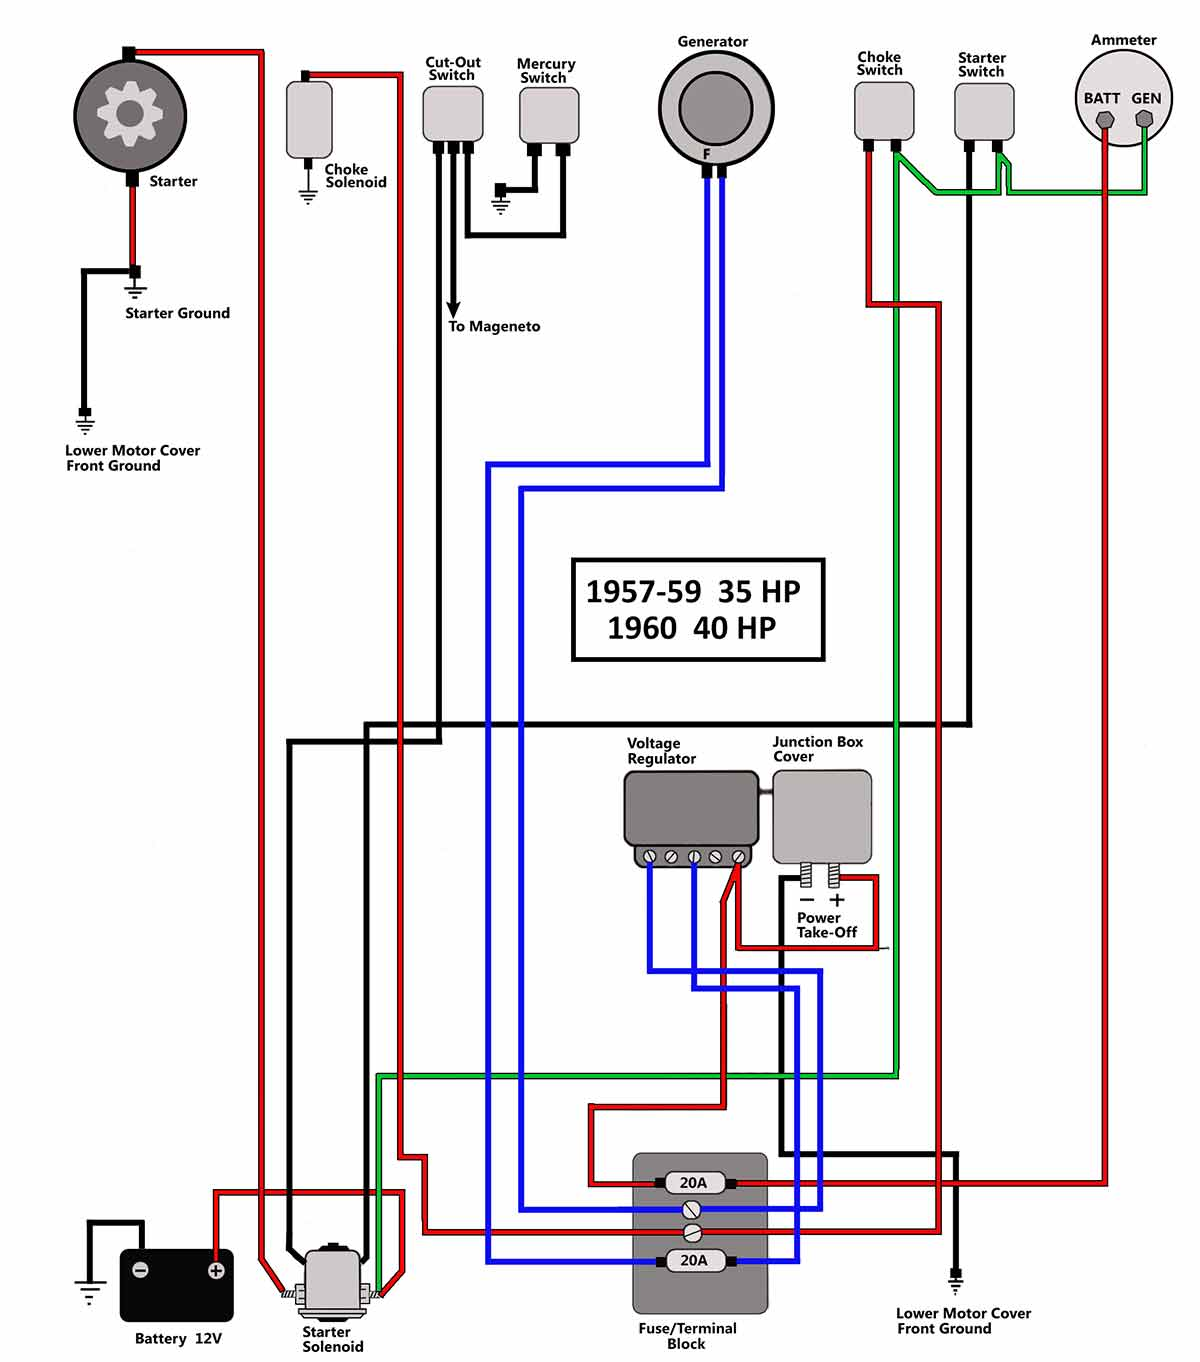 1957 60_35 40 help with wiring ignition and connecting battery to 1973 40hp 40 hp mercury outboard wiring diagram at suagrazia.org